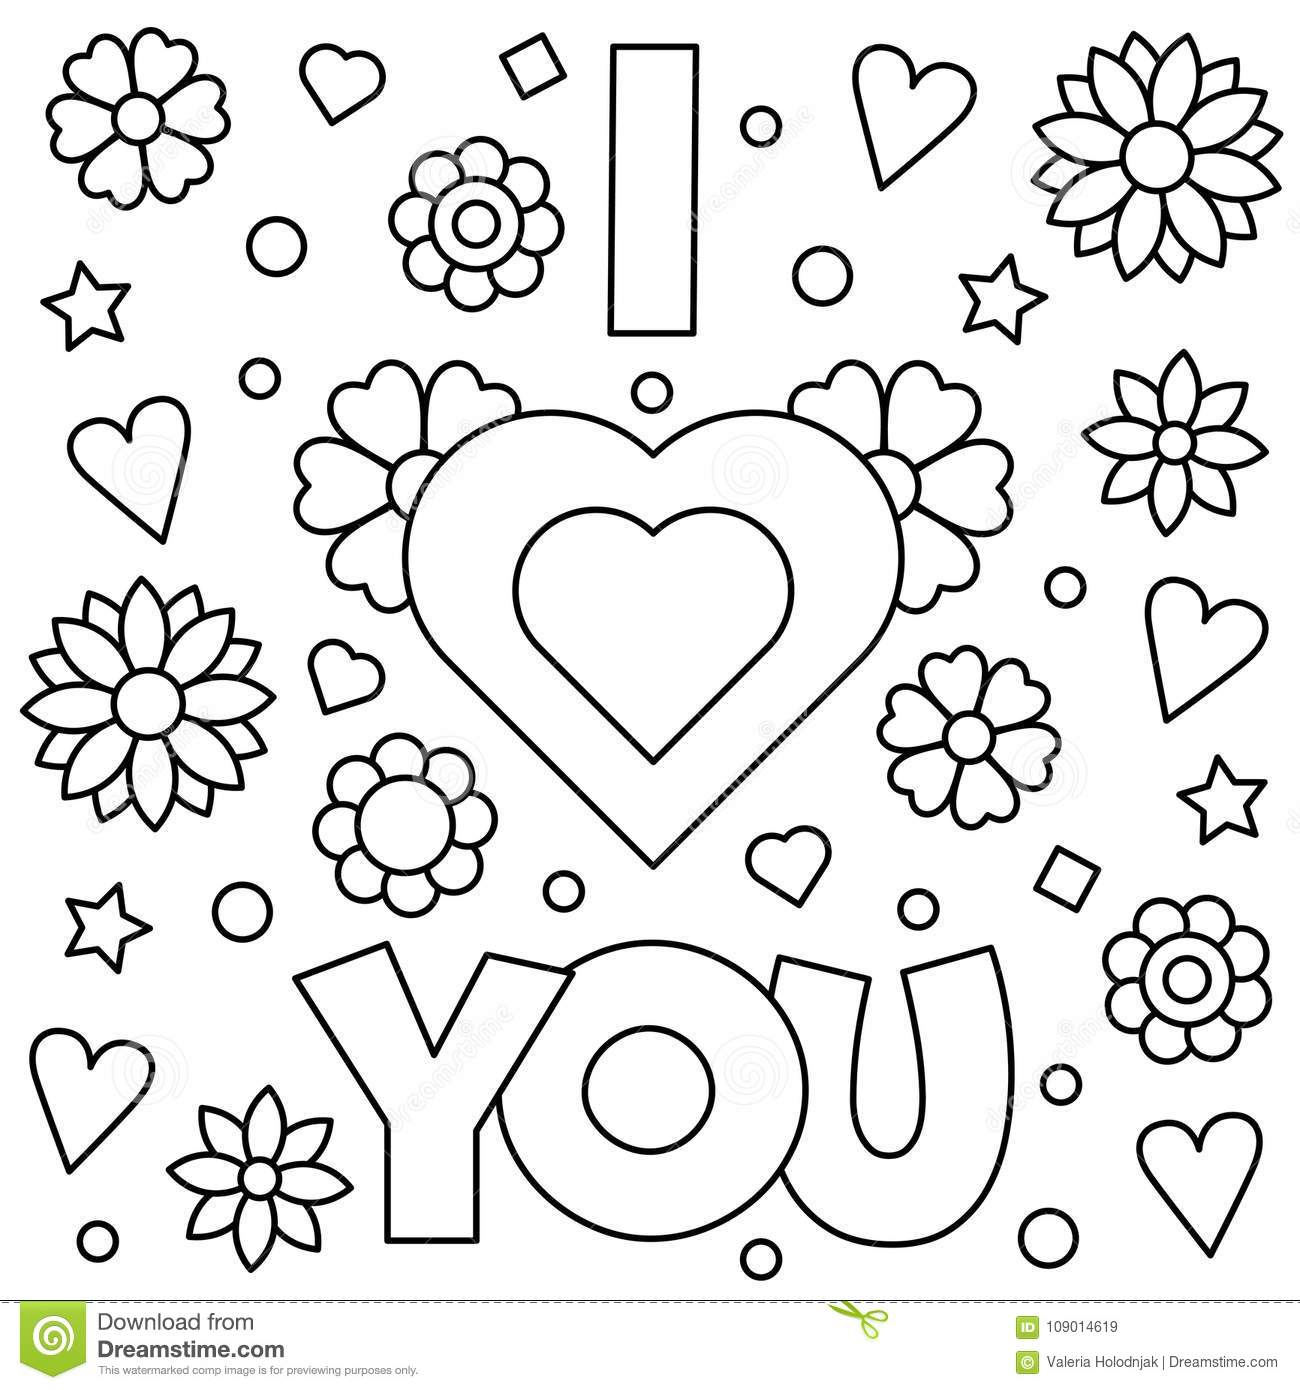 coloring picture love i love you coloring page vector illustration stock coloring love picture